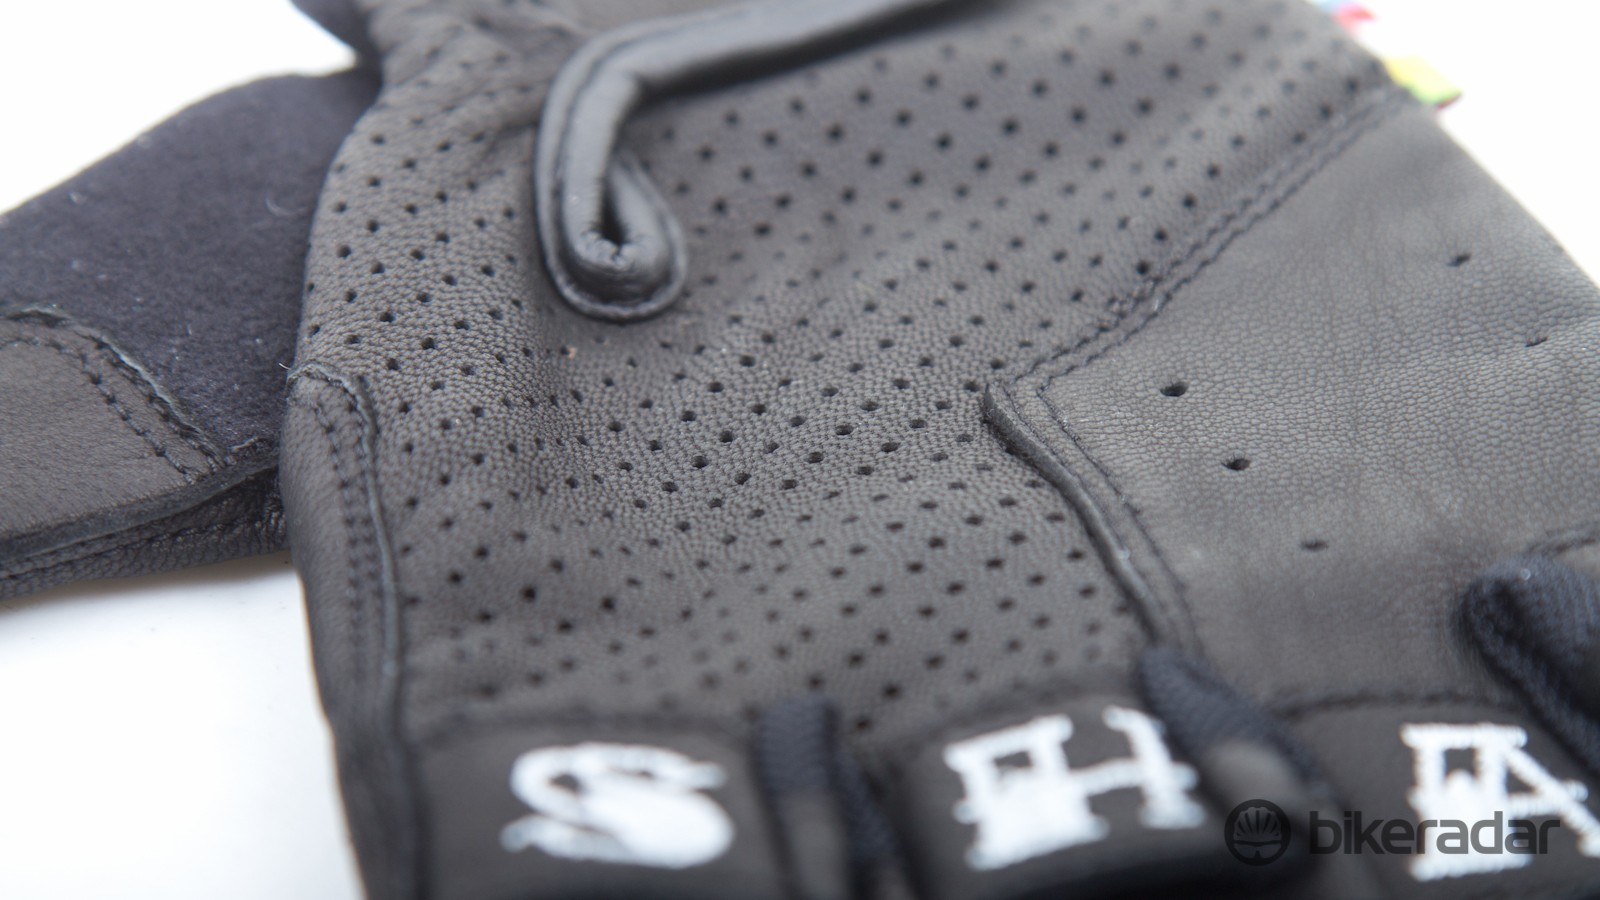 Perforations on the top of the glove provide plenty of ventilation